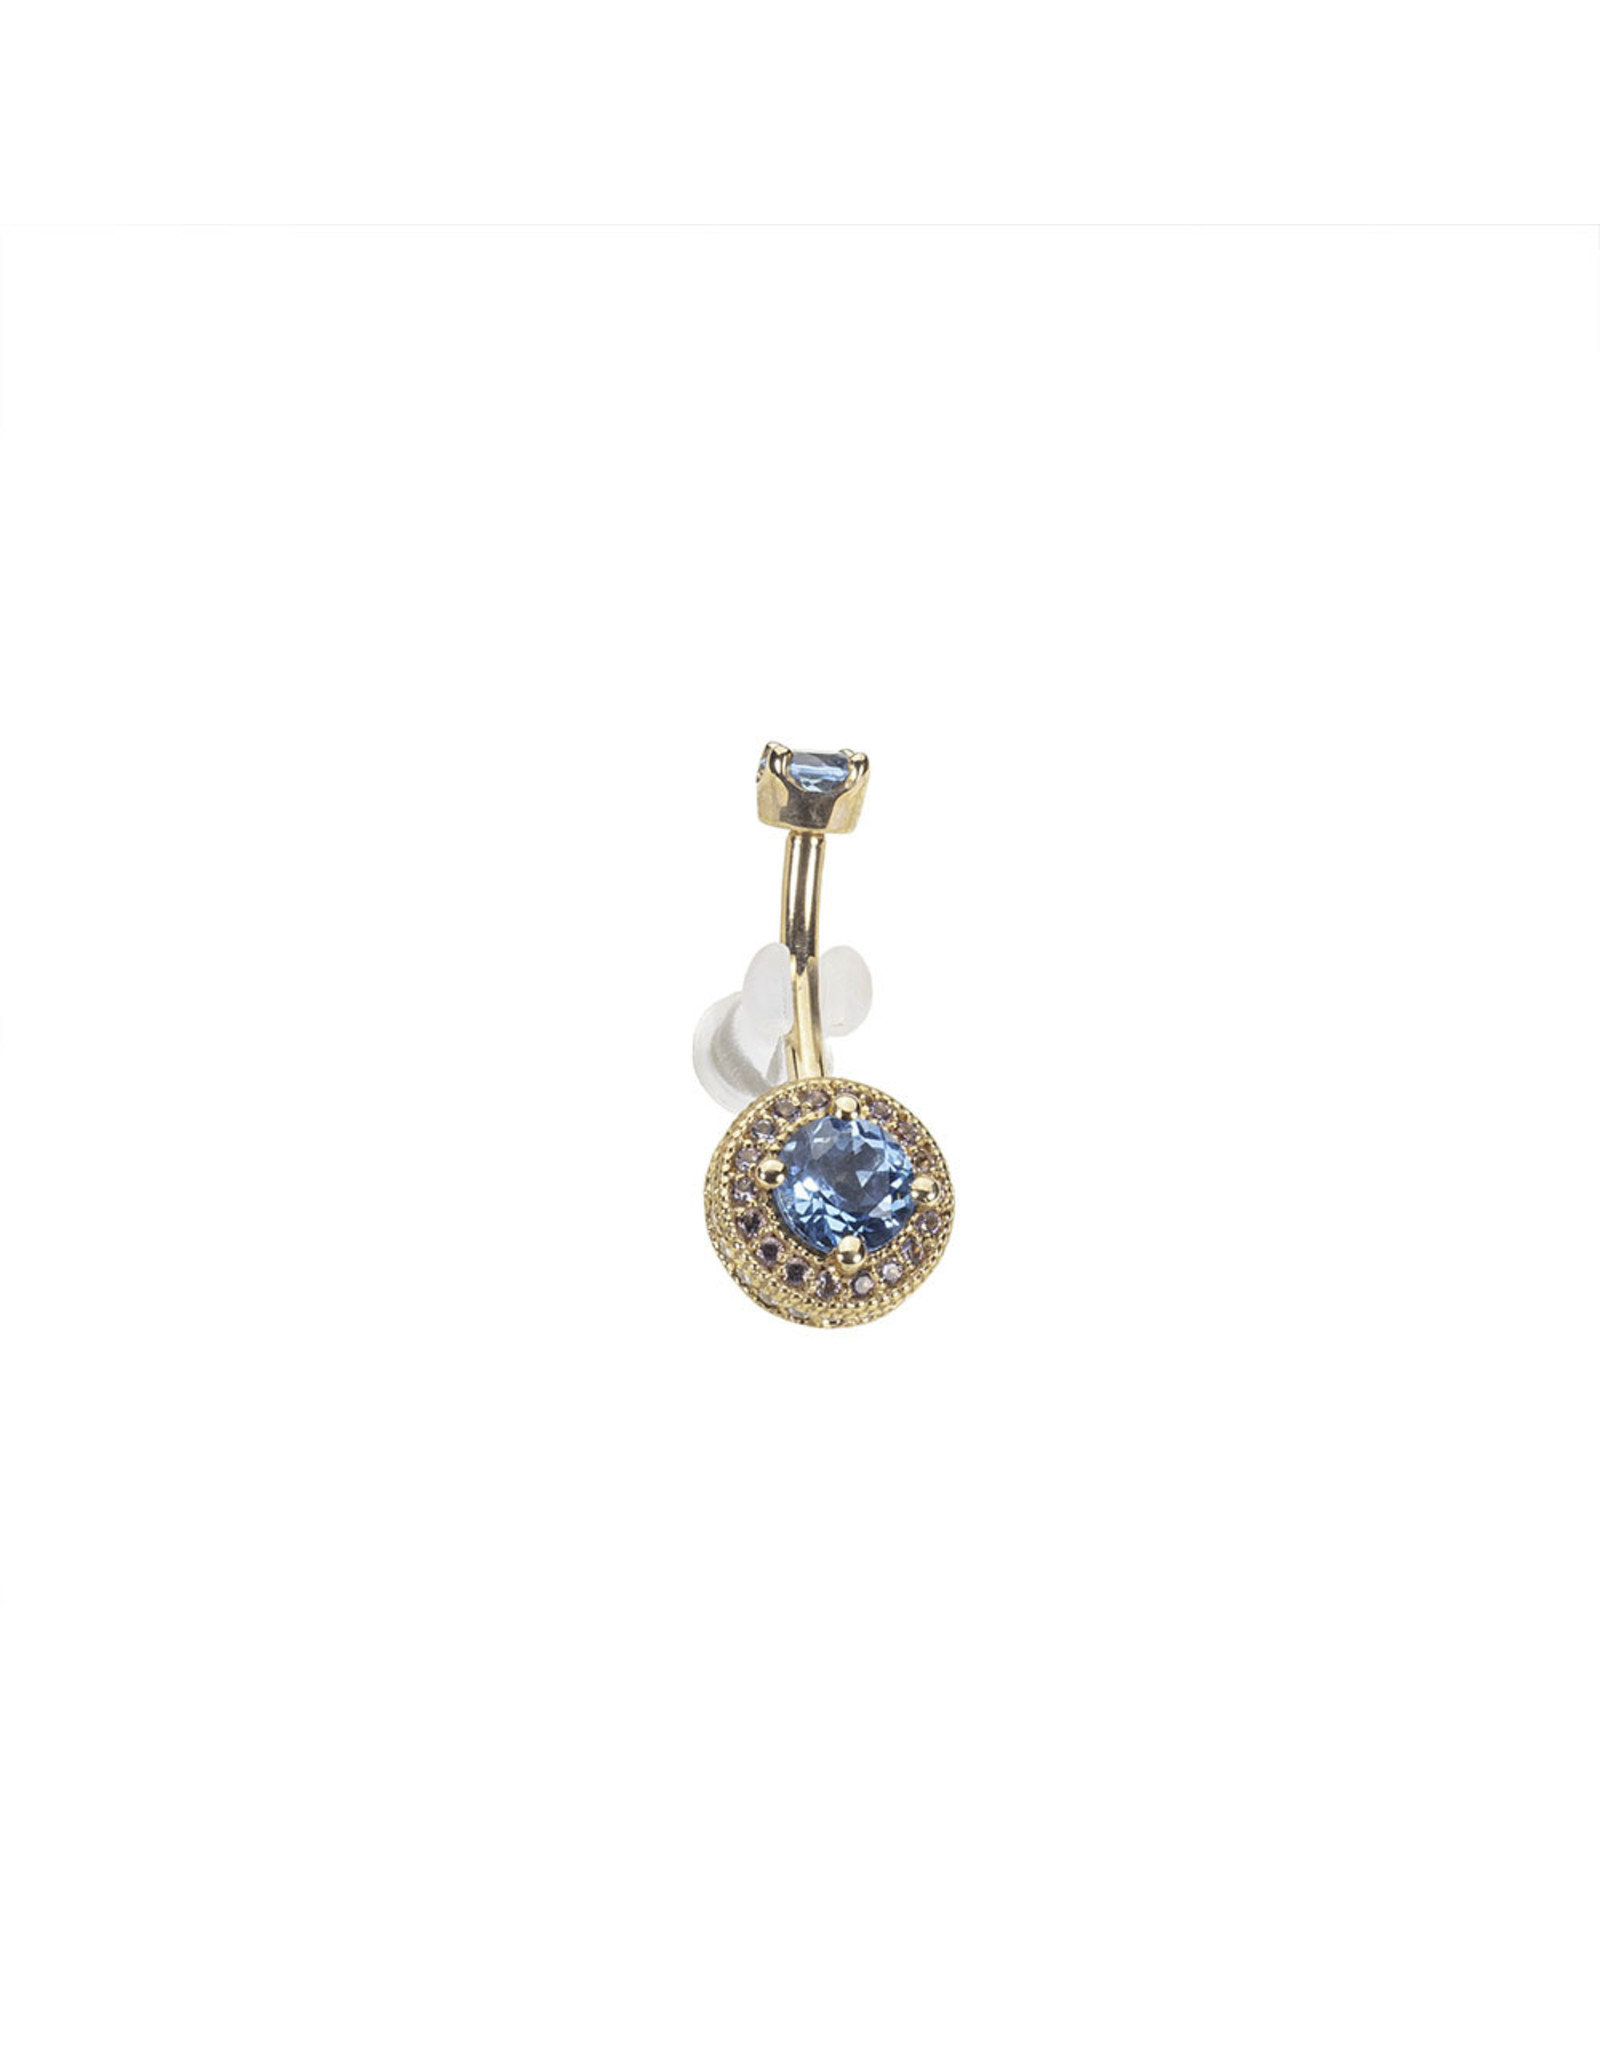 """BVLA BVLA 14g 3/8 rose gold """"Halo"""" navel curve with 4.0 prong set Swiss blue topaz top and a 5.0 Swiss blue topaz  center surrounded by 1.25 light amethyst & 1.0 CZ"""